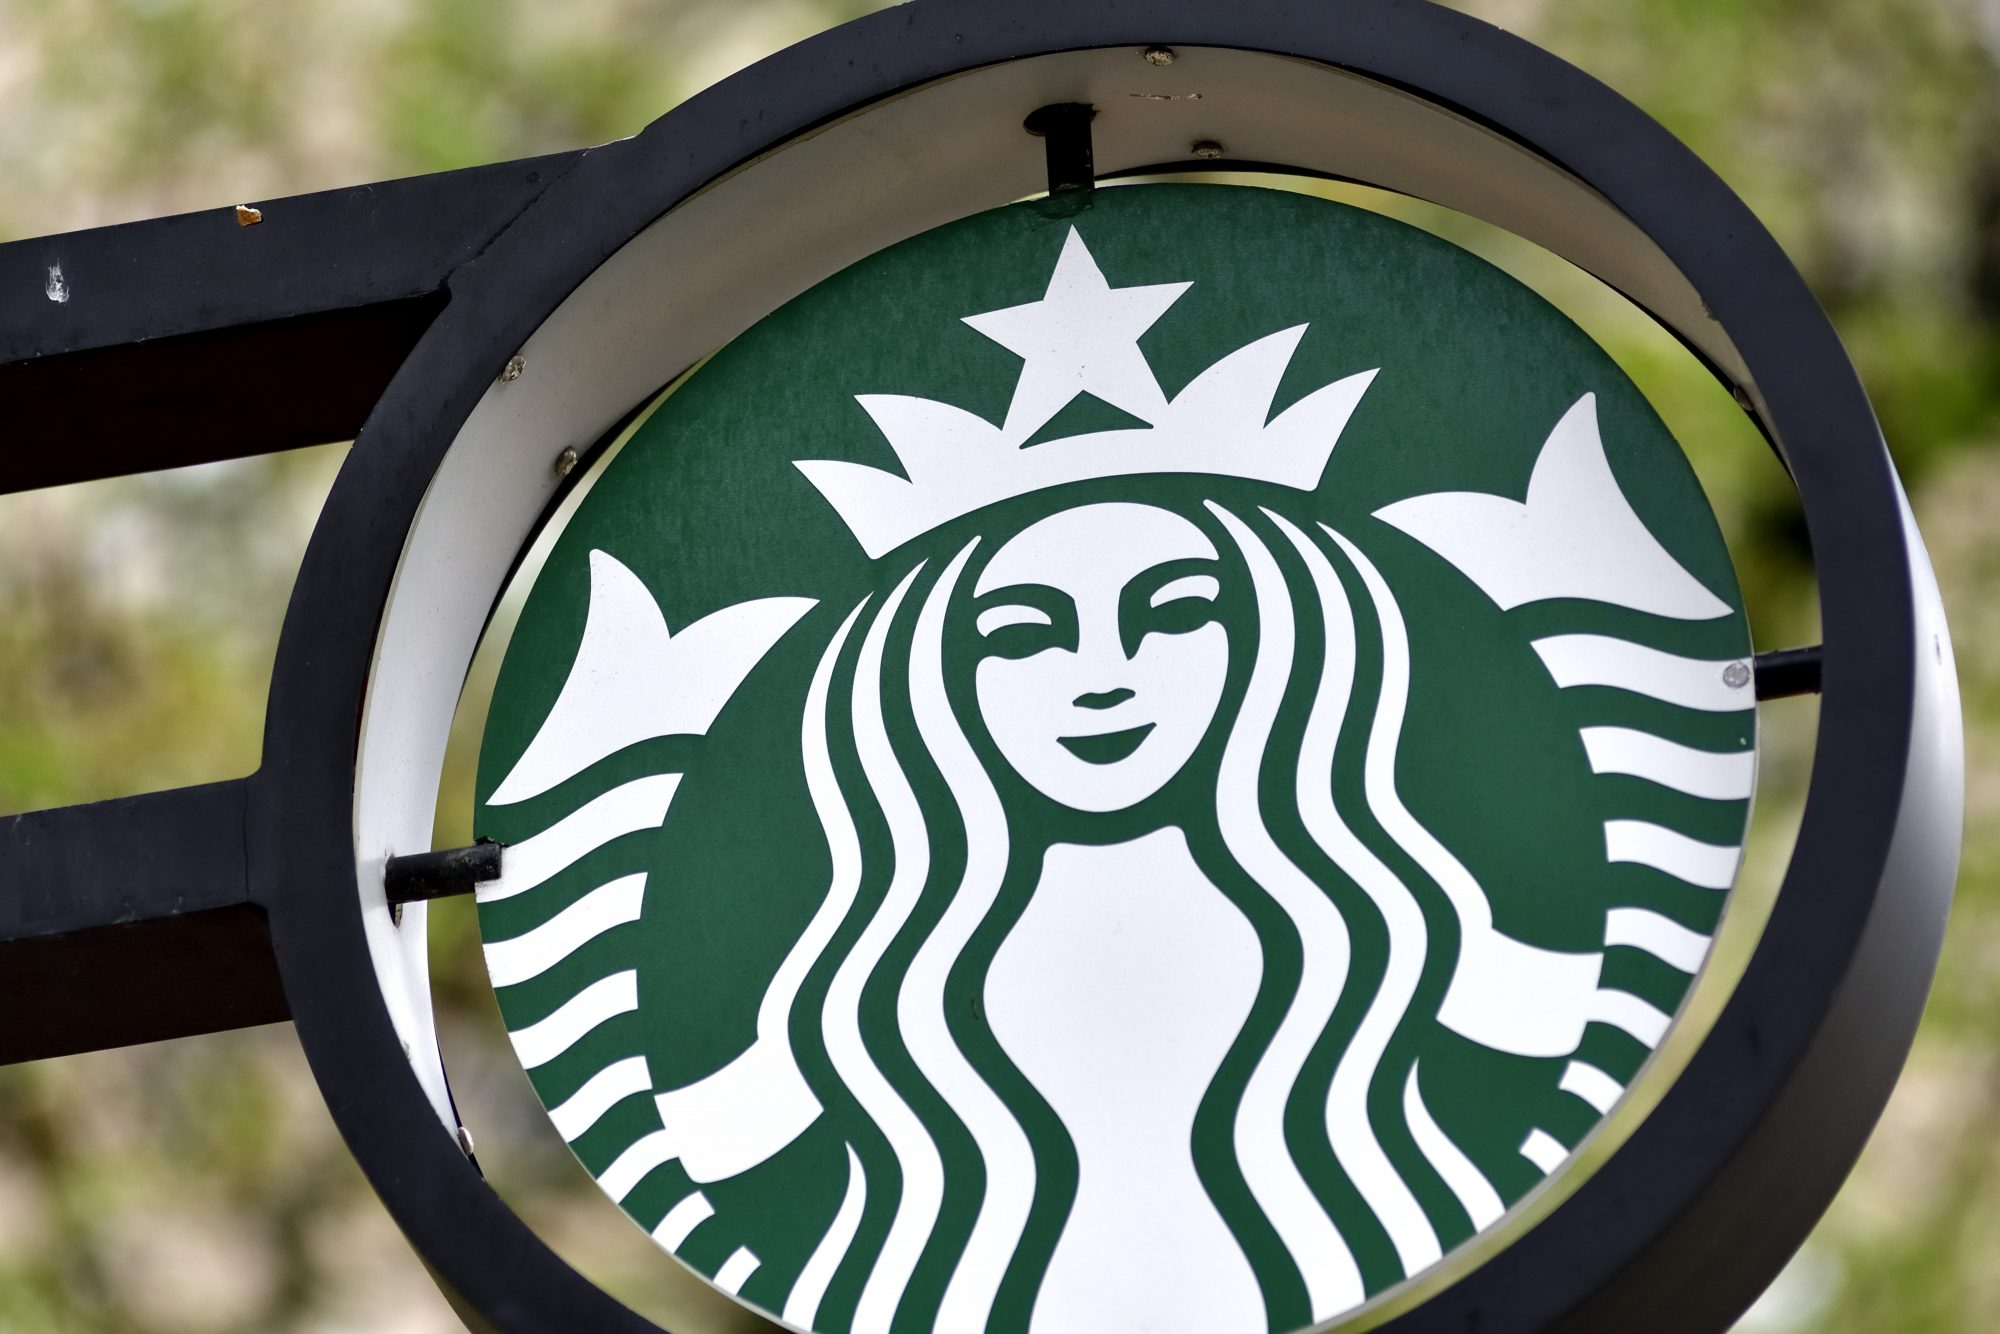 We Love Starbucks, But Here Are 6 Menu Items That Pack More Carbs and Calories Than You Expect